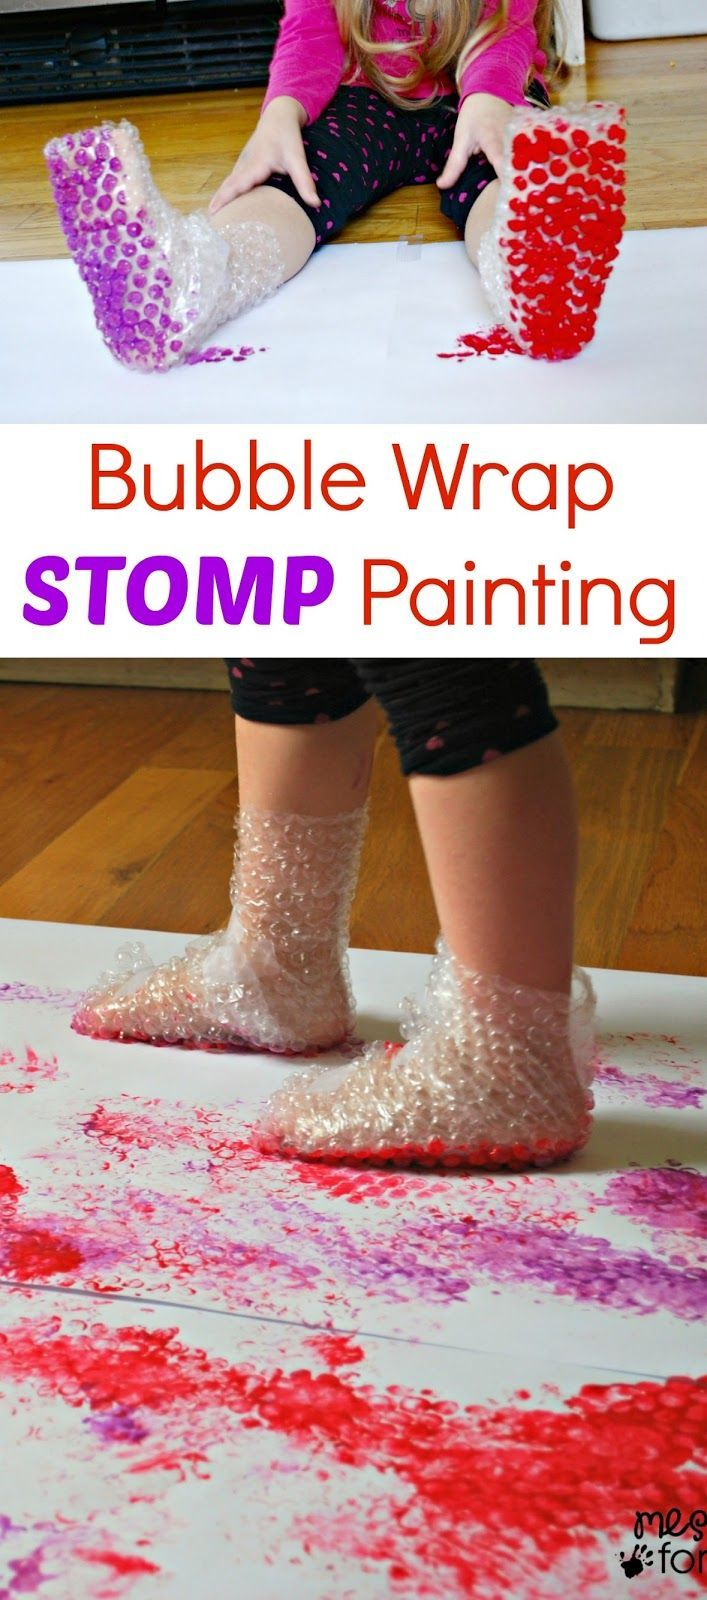 "Bubble Wrap Stomp Painting - make some bubble wrap ""boots"" then dip in paint and stomp around to create art! LOVE this!!"